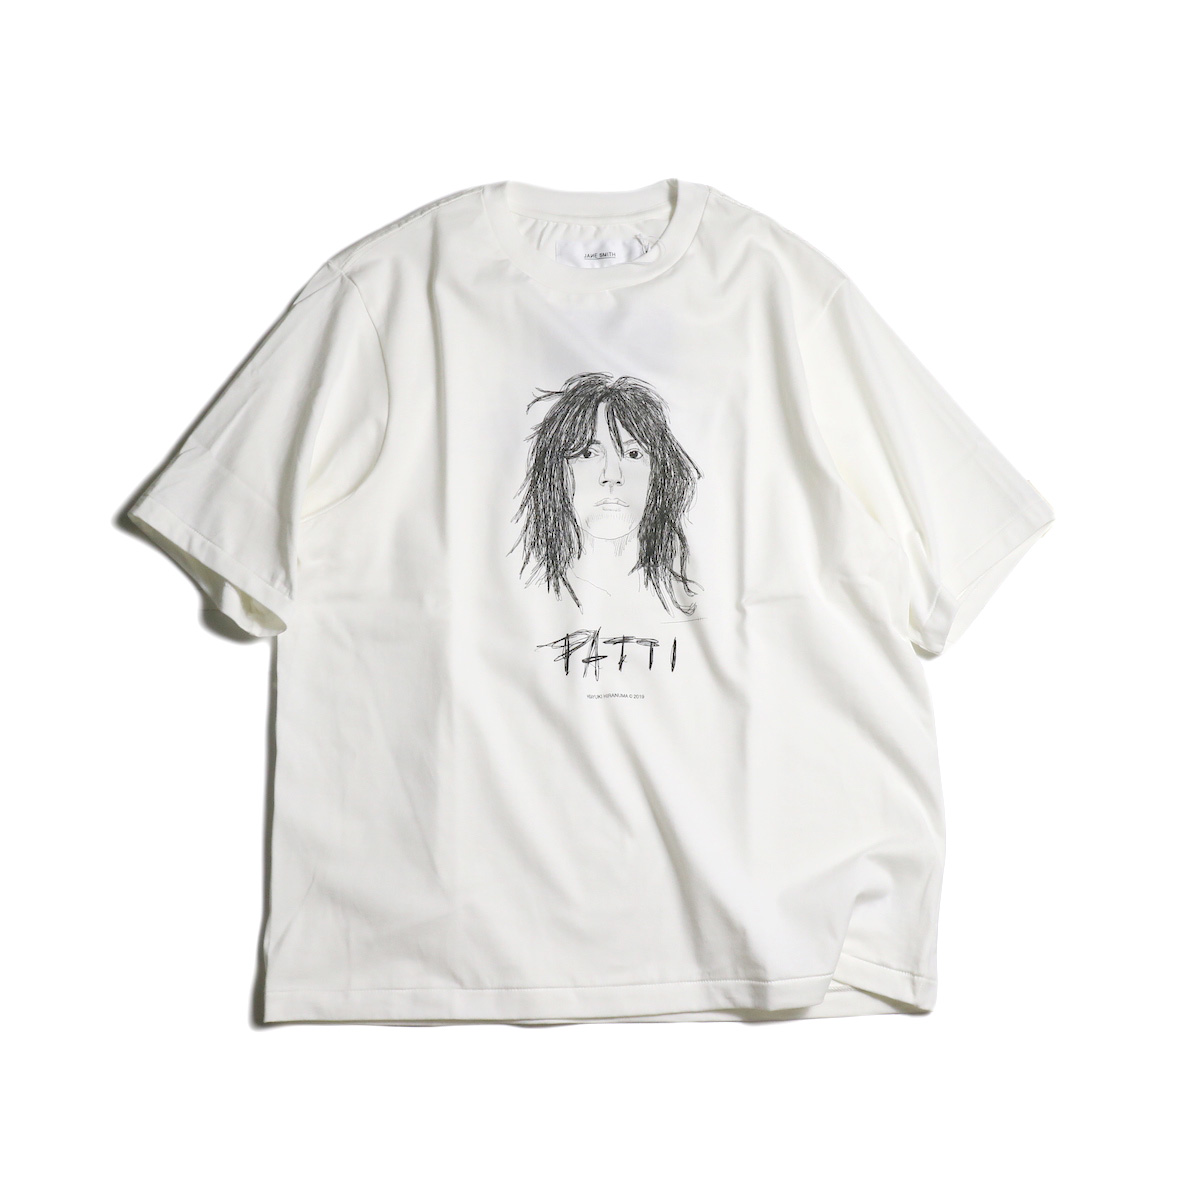 JANE SMITH / PATTI S/S Tee